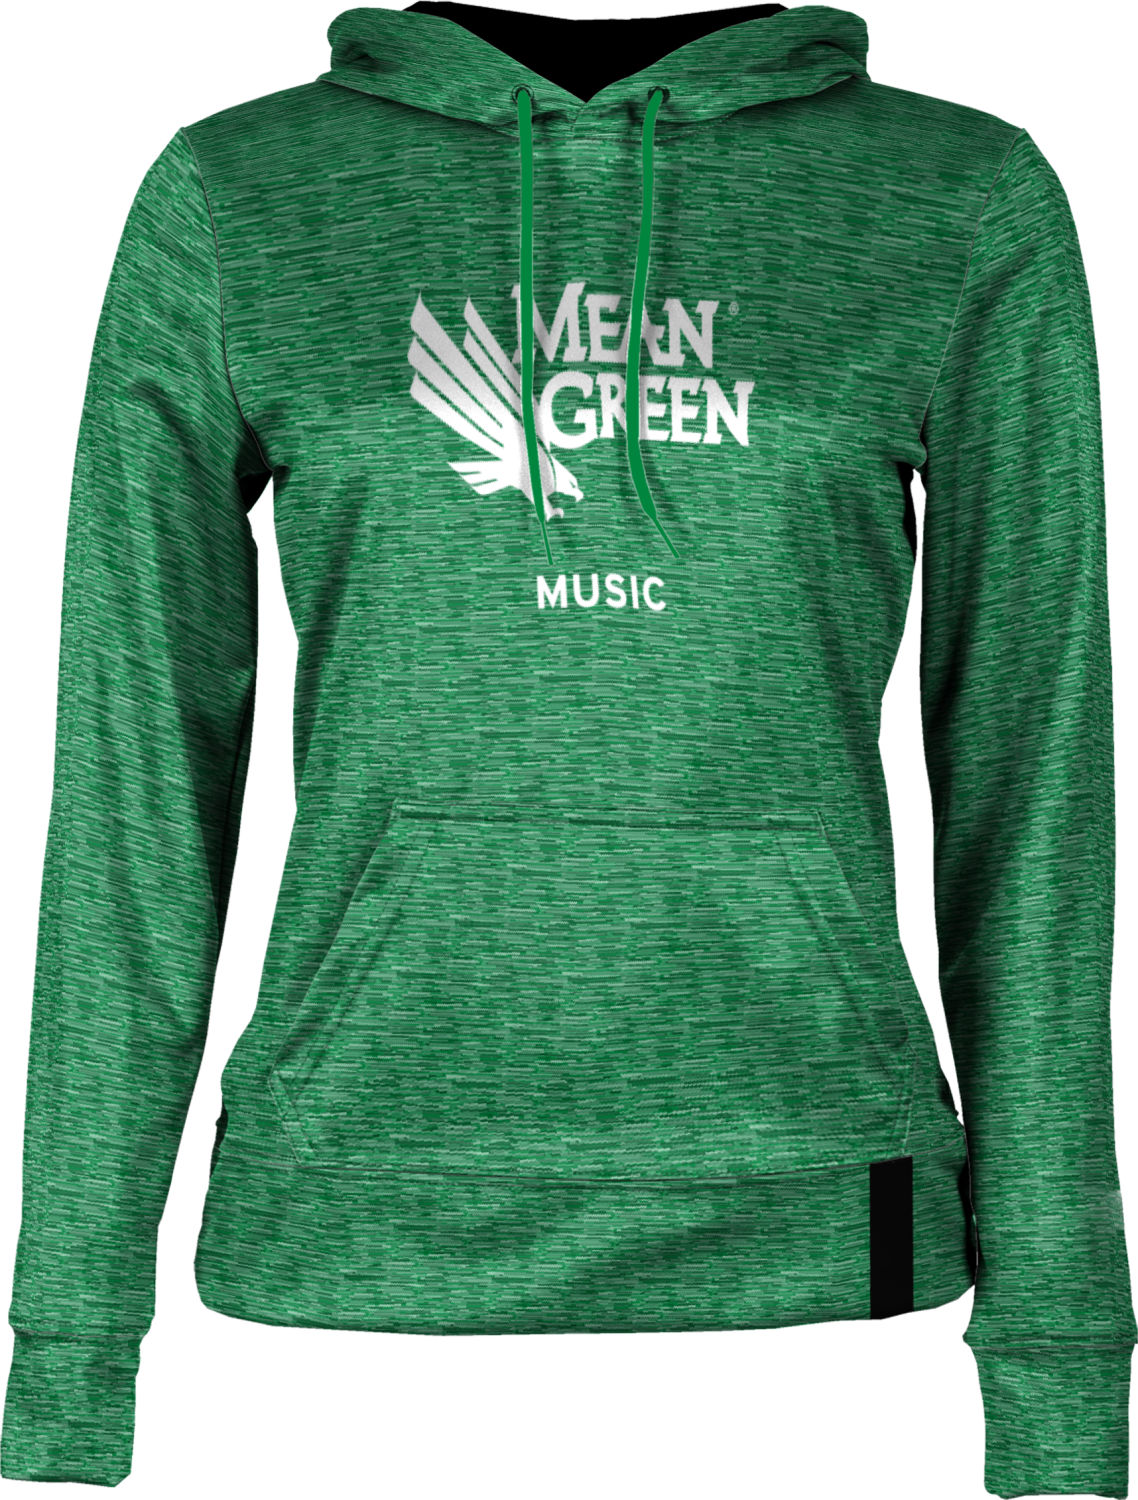 Girl's ProSphere Sublimated Hoodie - Music